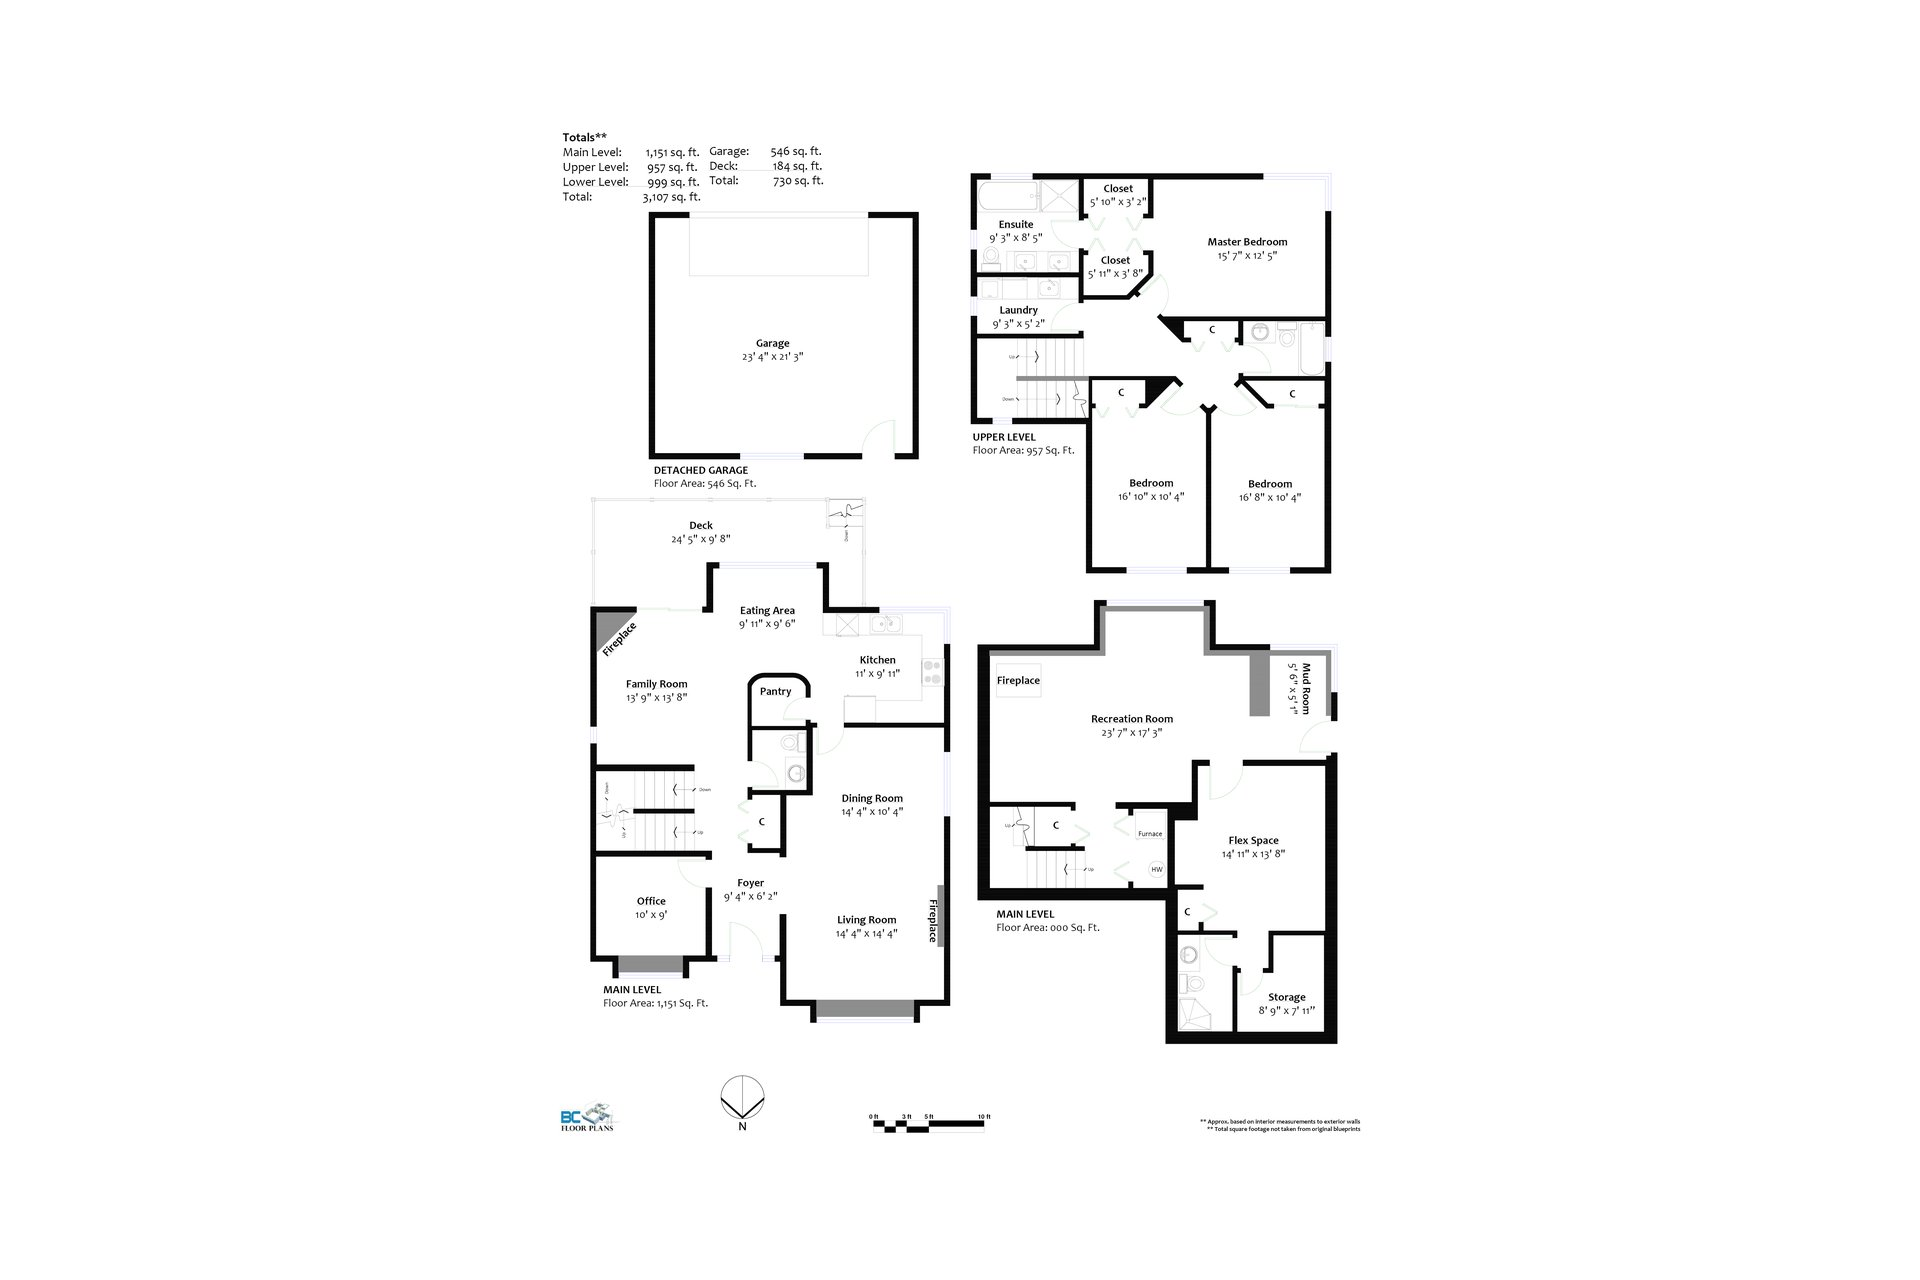 All Floor Plans - Grab the pdf floorplan for the 'Downloads' tab